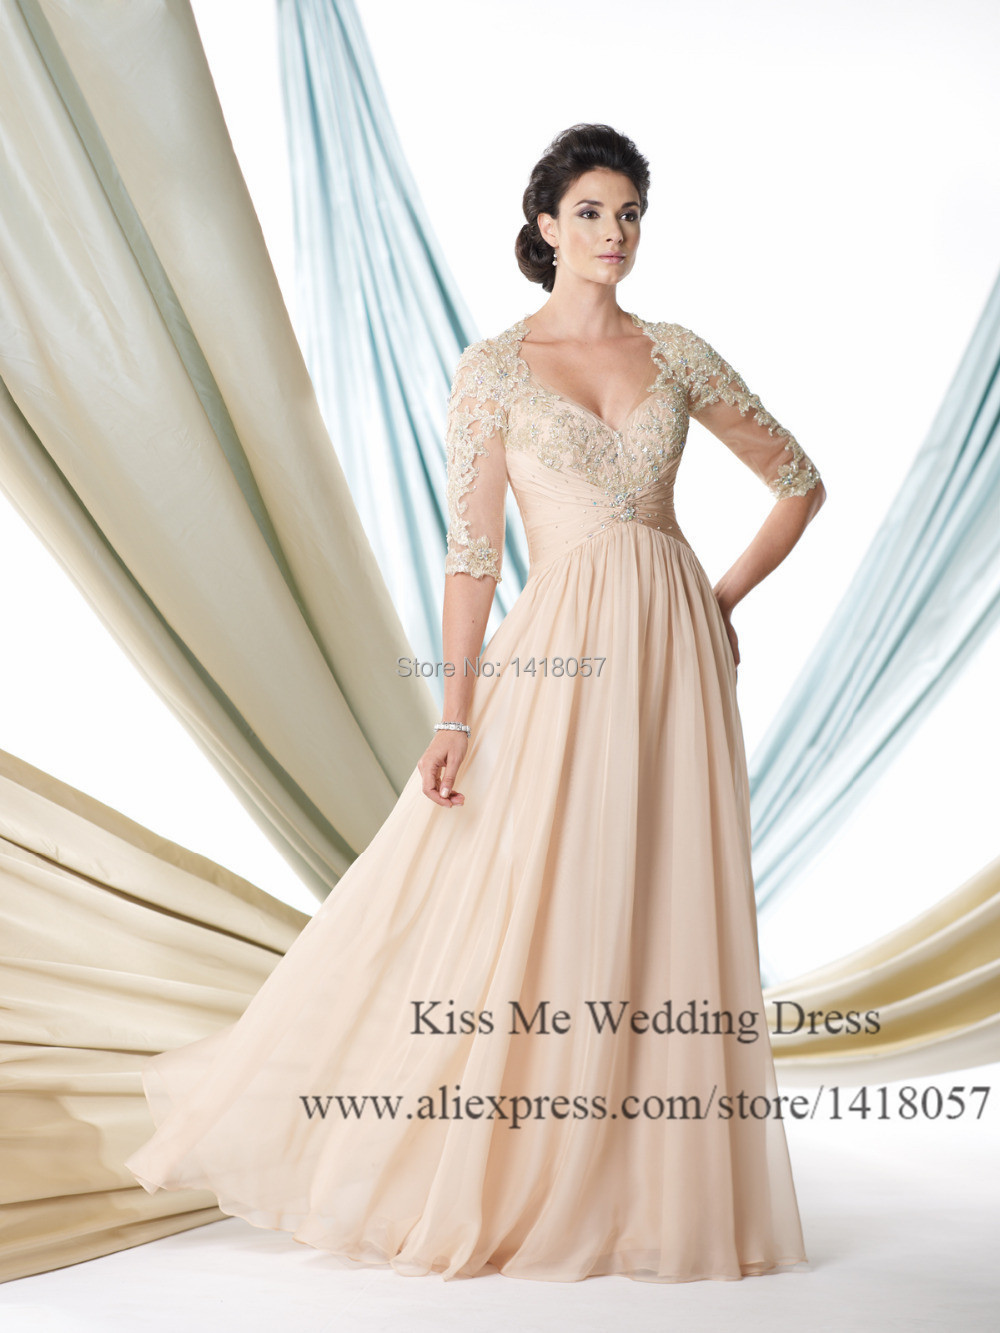 2015 Elegant Champagne Plus Size Mother Of The Bride Dresses With